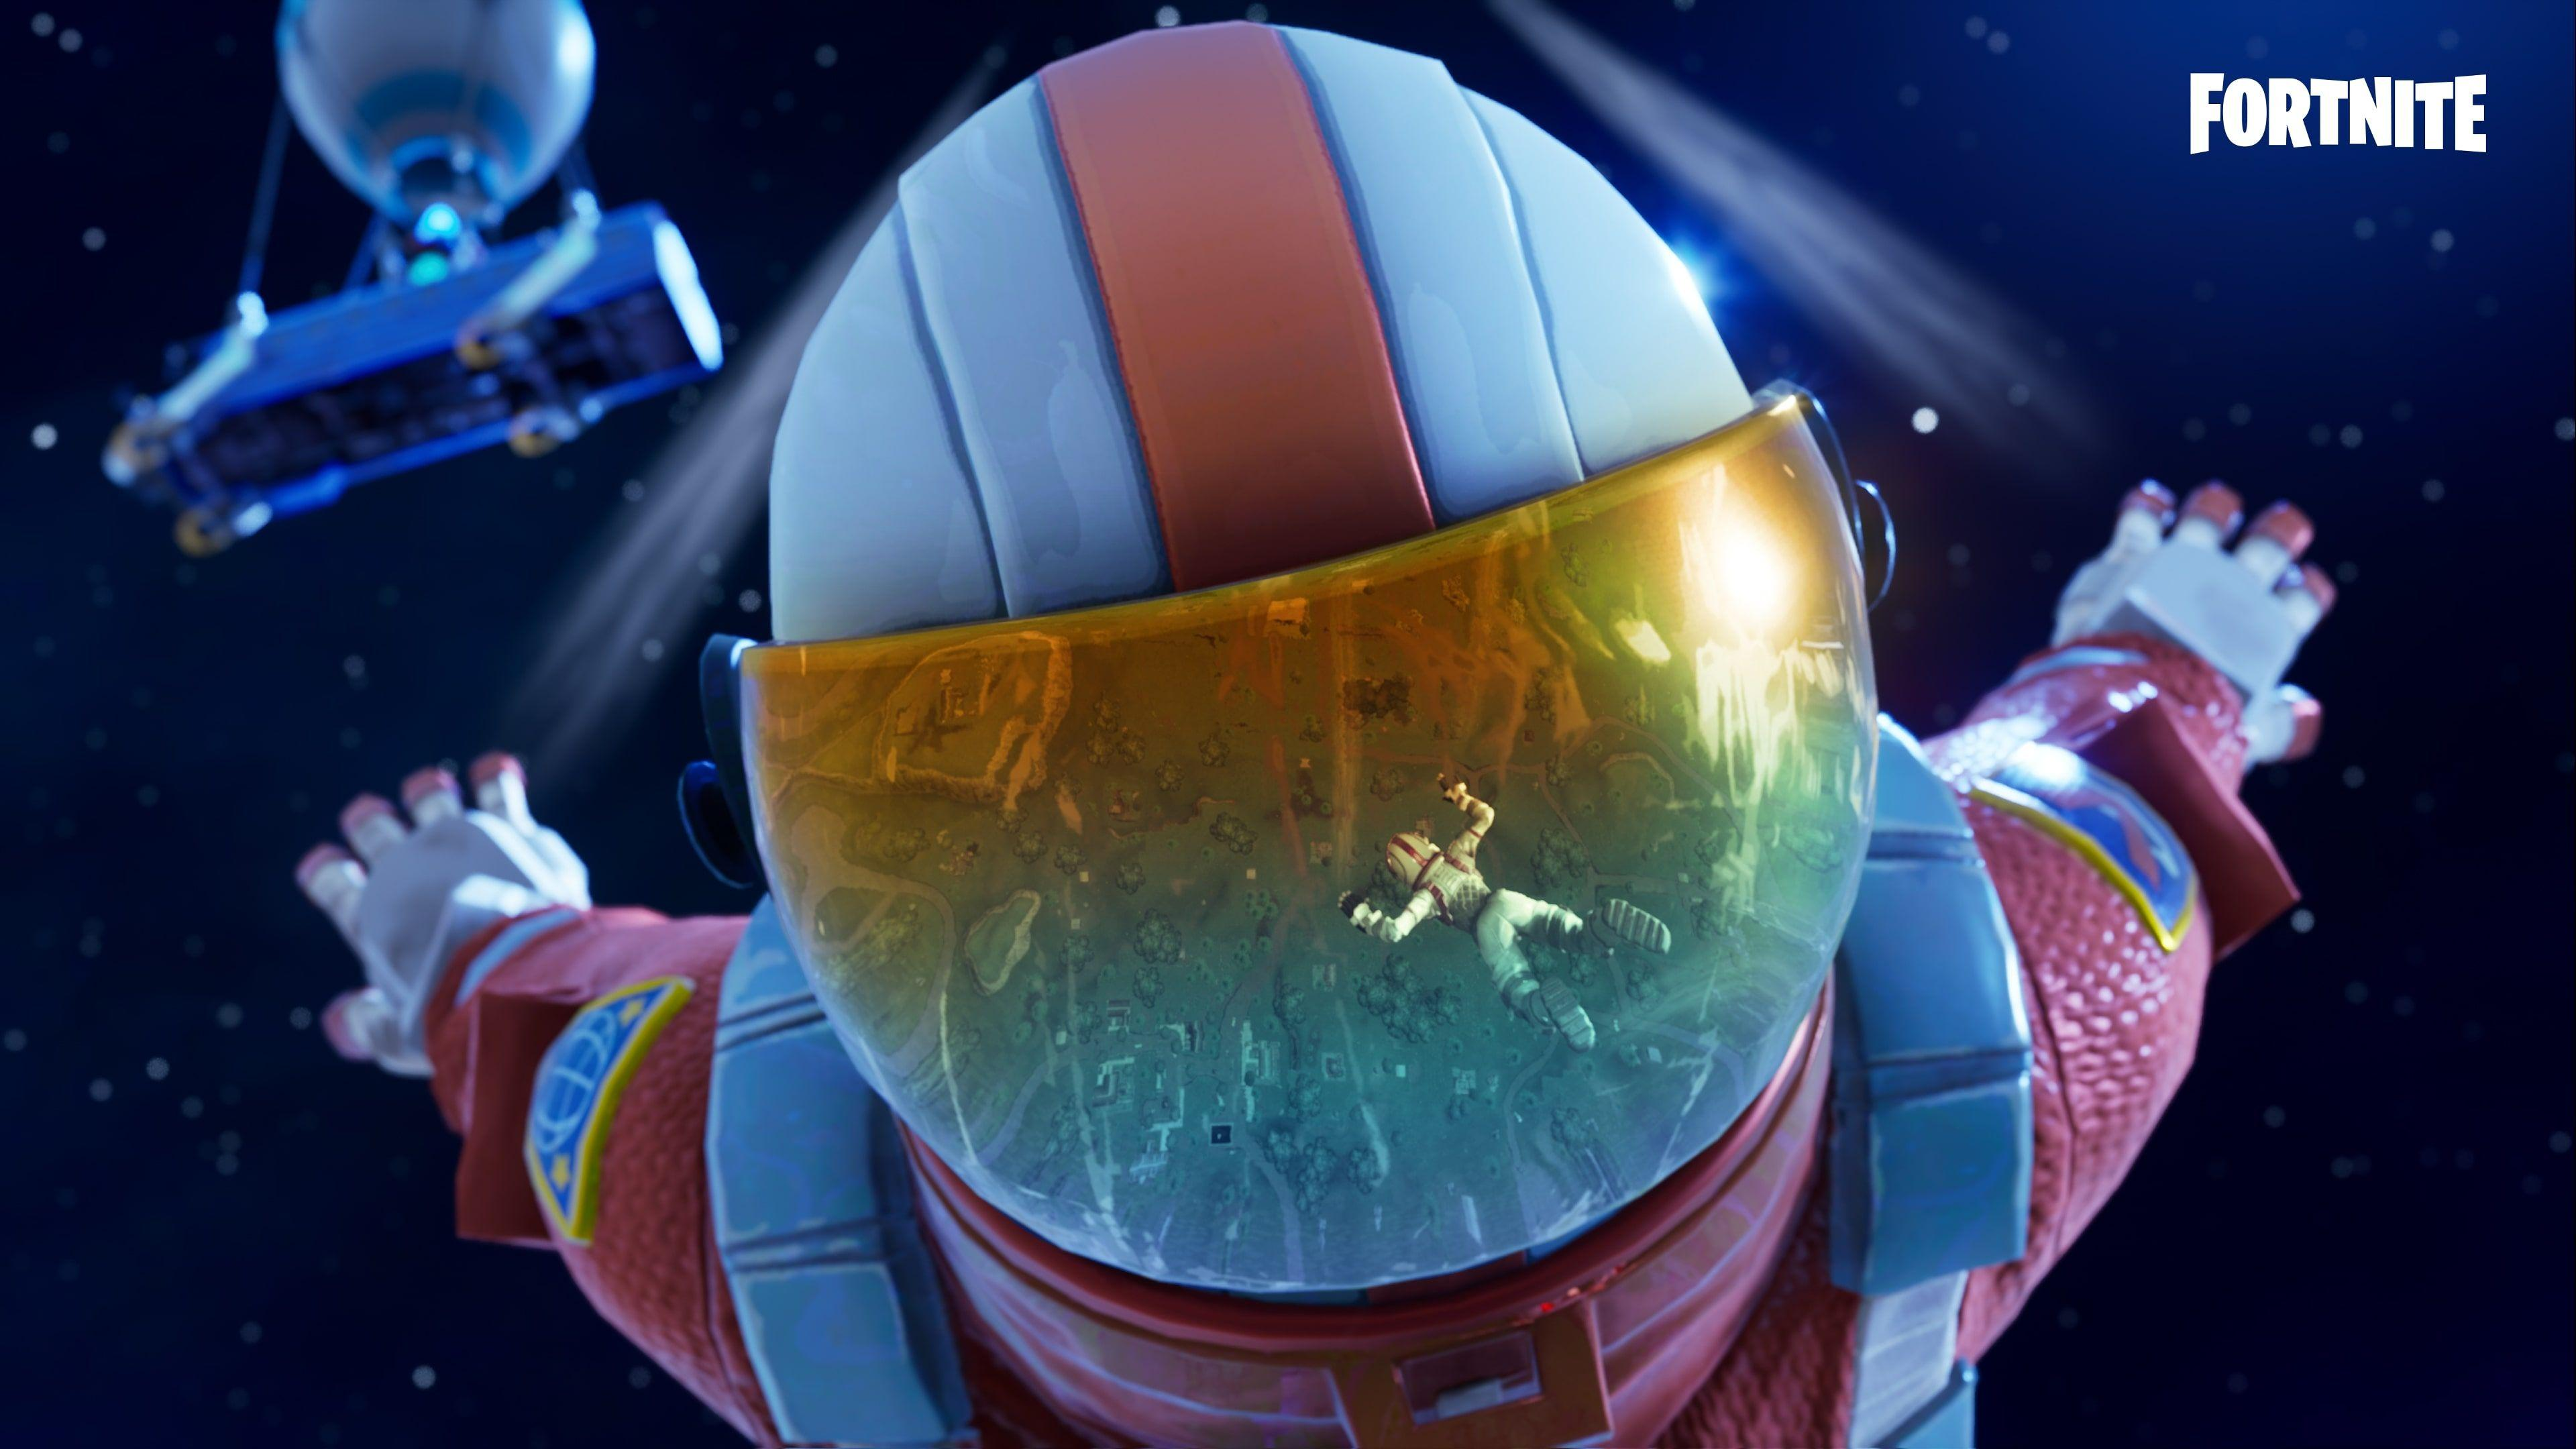 Fortnite 4K Wallpapers Battle Royale Skydive Wallpapers and